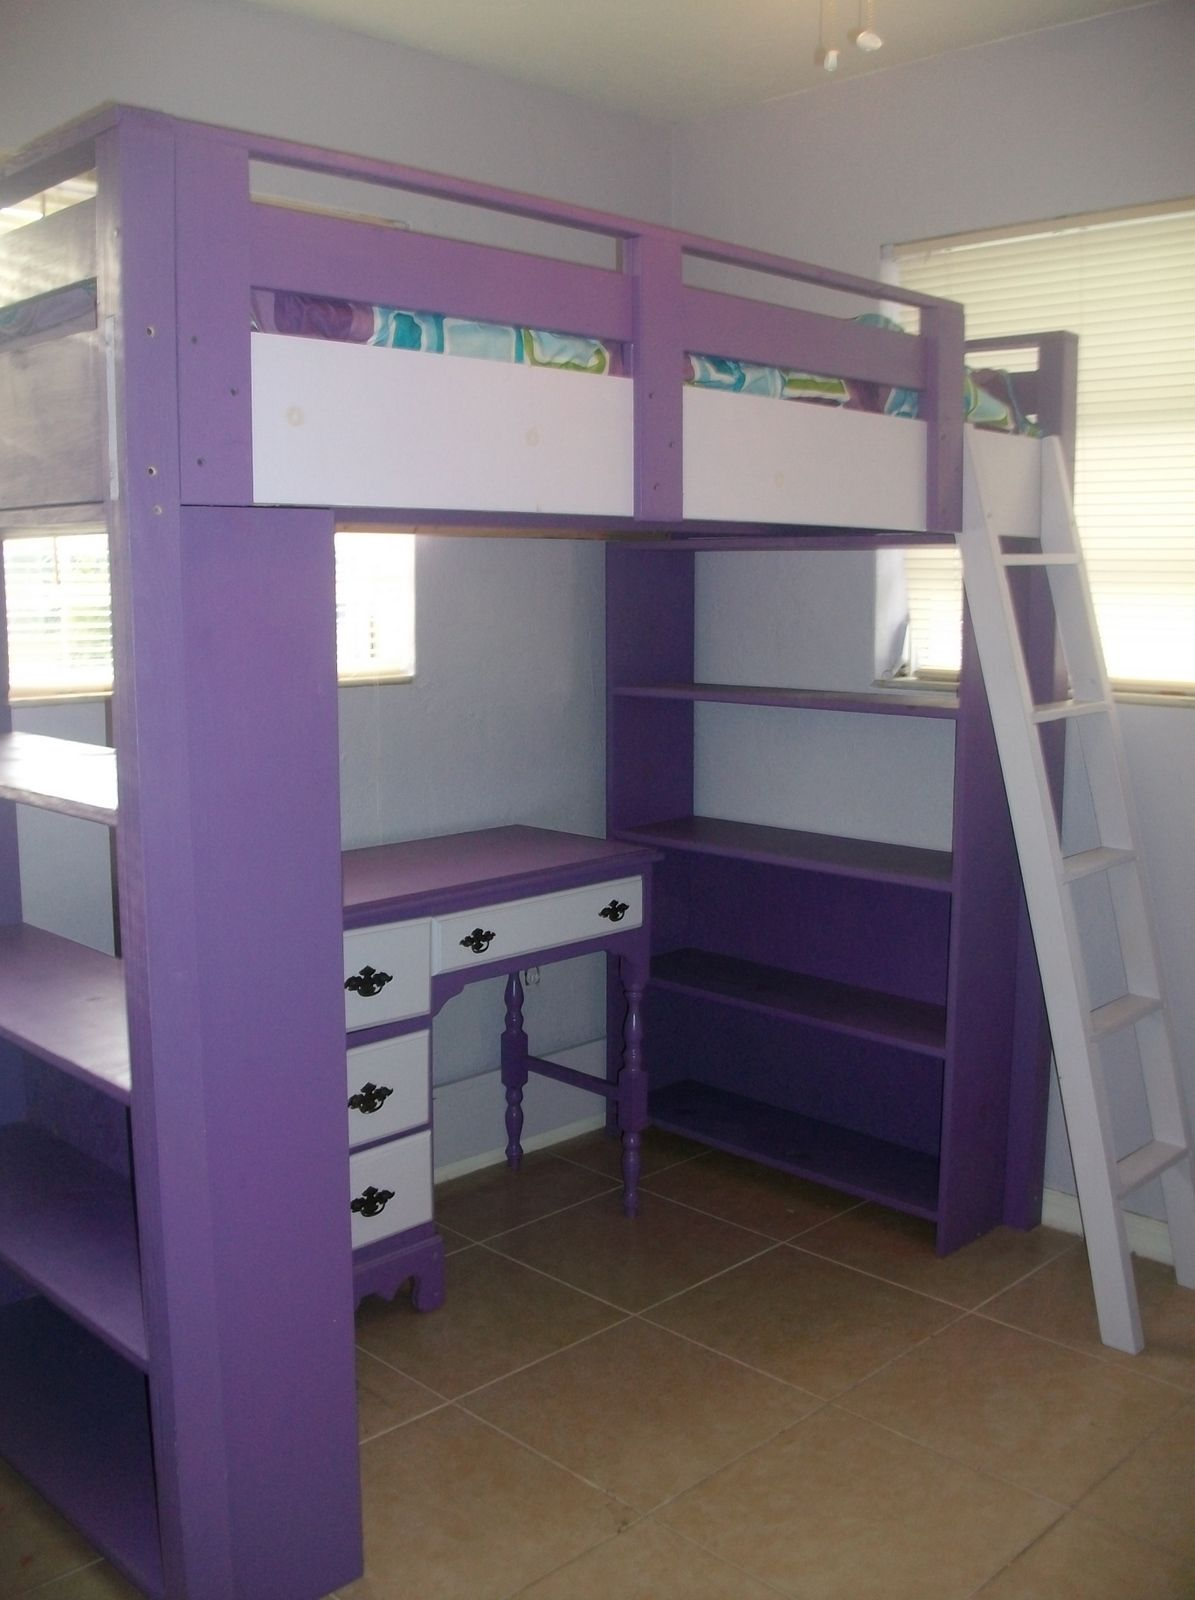 Bunk bed with desk underneath plans - Diy Loft Bed Plans With A Desk Under Purple Loft Bed With Bookcases Do